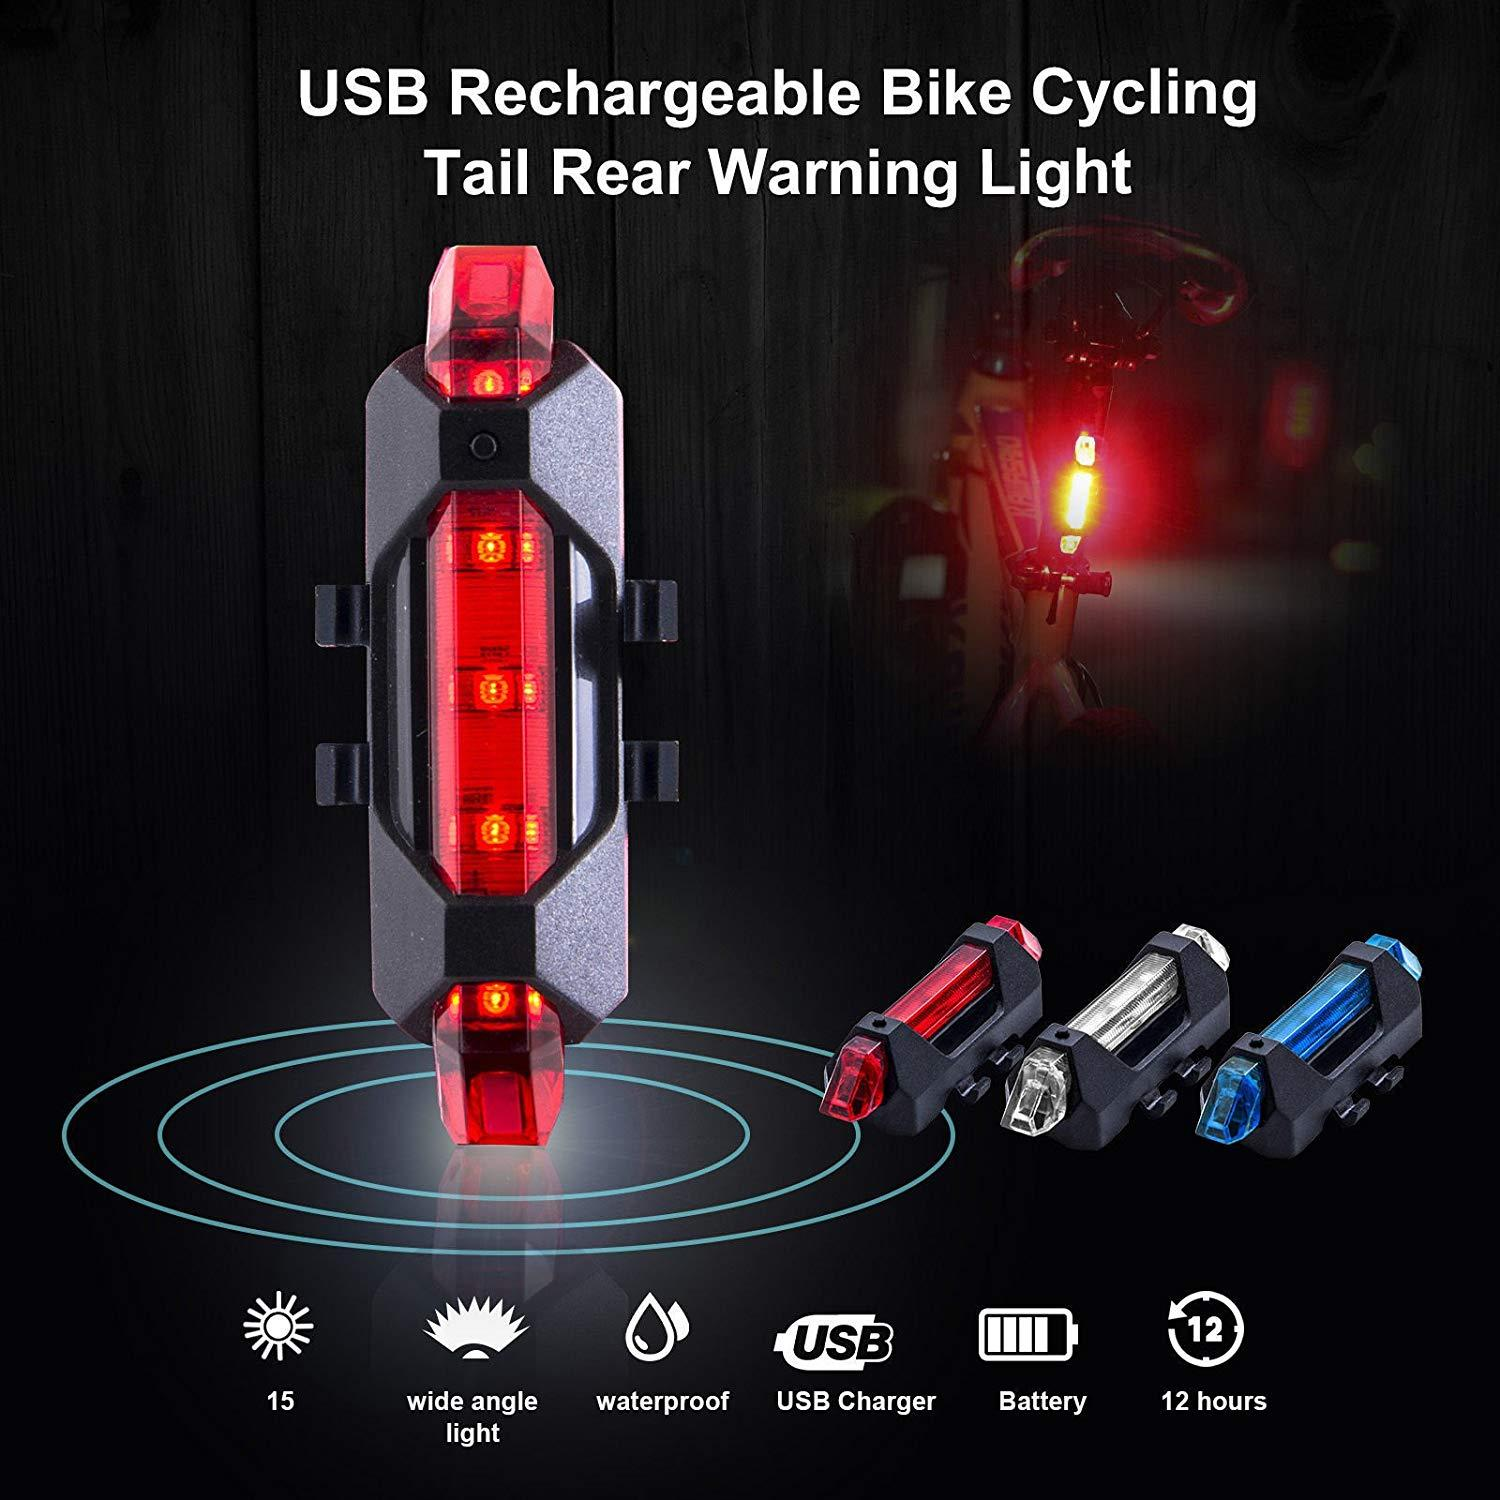 Bicycle Accessories Back To Search Resultssports & Entertainment Lixada Outdoor Sport Safety Bag Reflective Vest Backpack With Led Turn Signal Light Remote Control Gear Usb Rechargeable Sale Overall Discount 50-70%